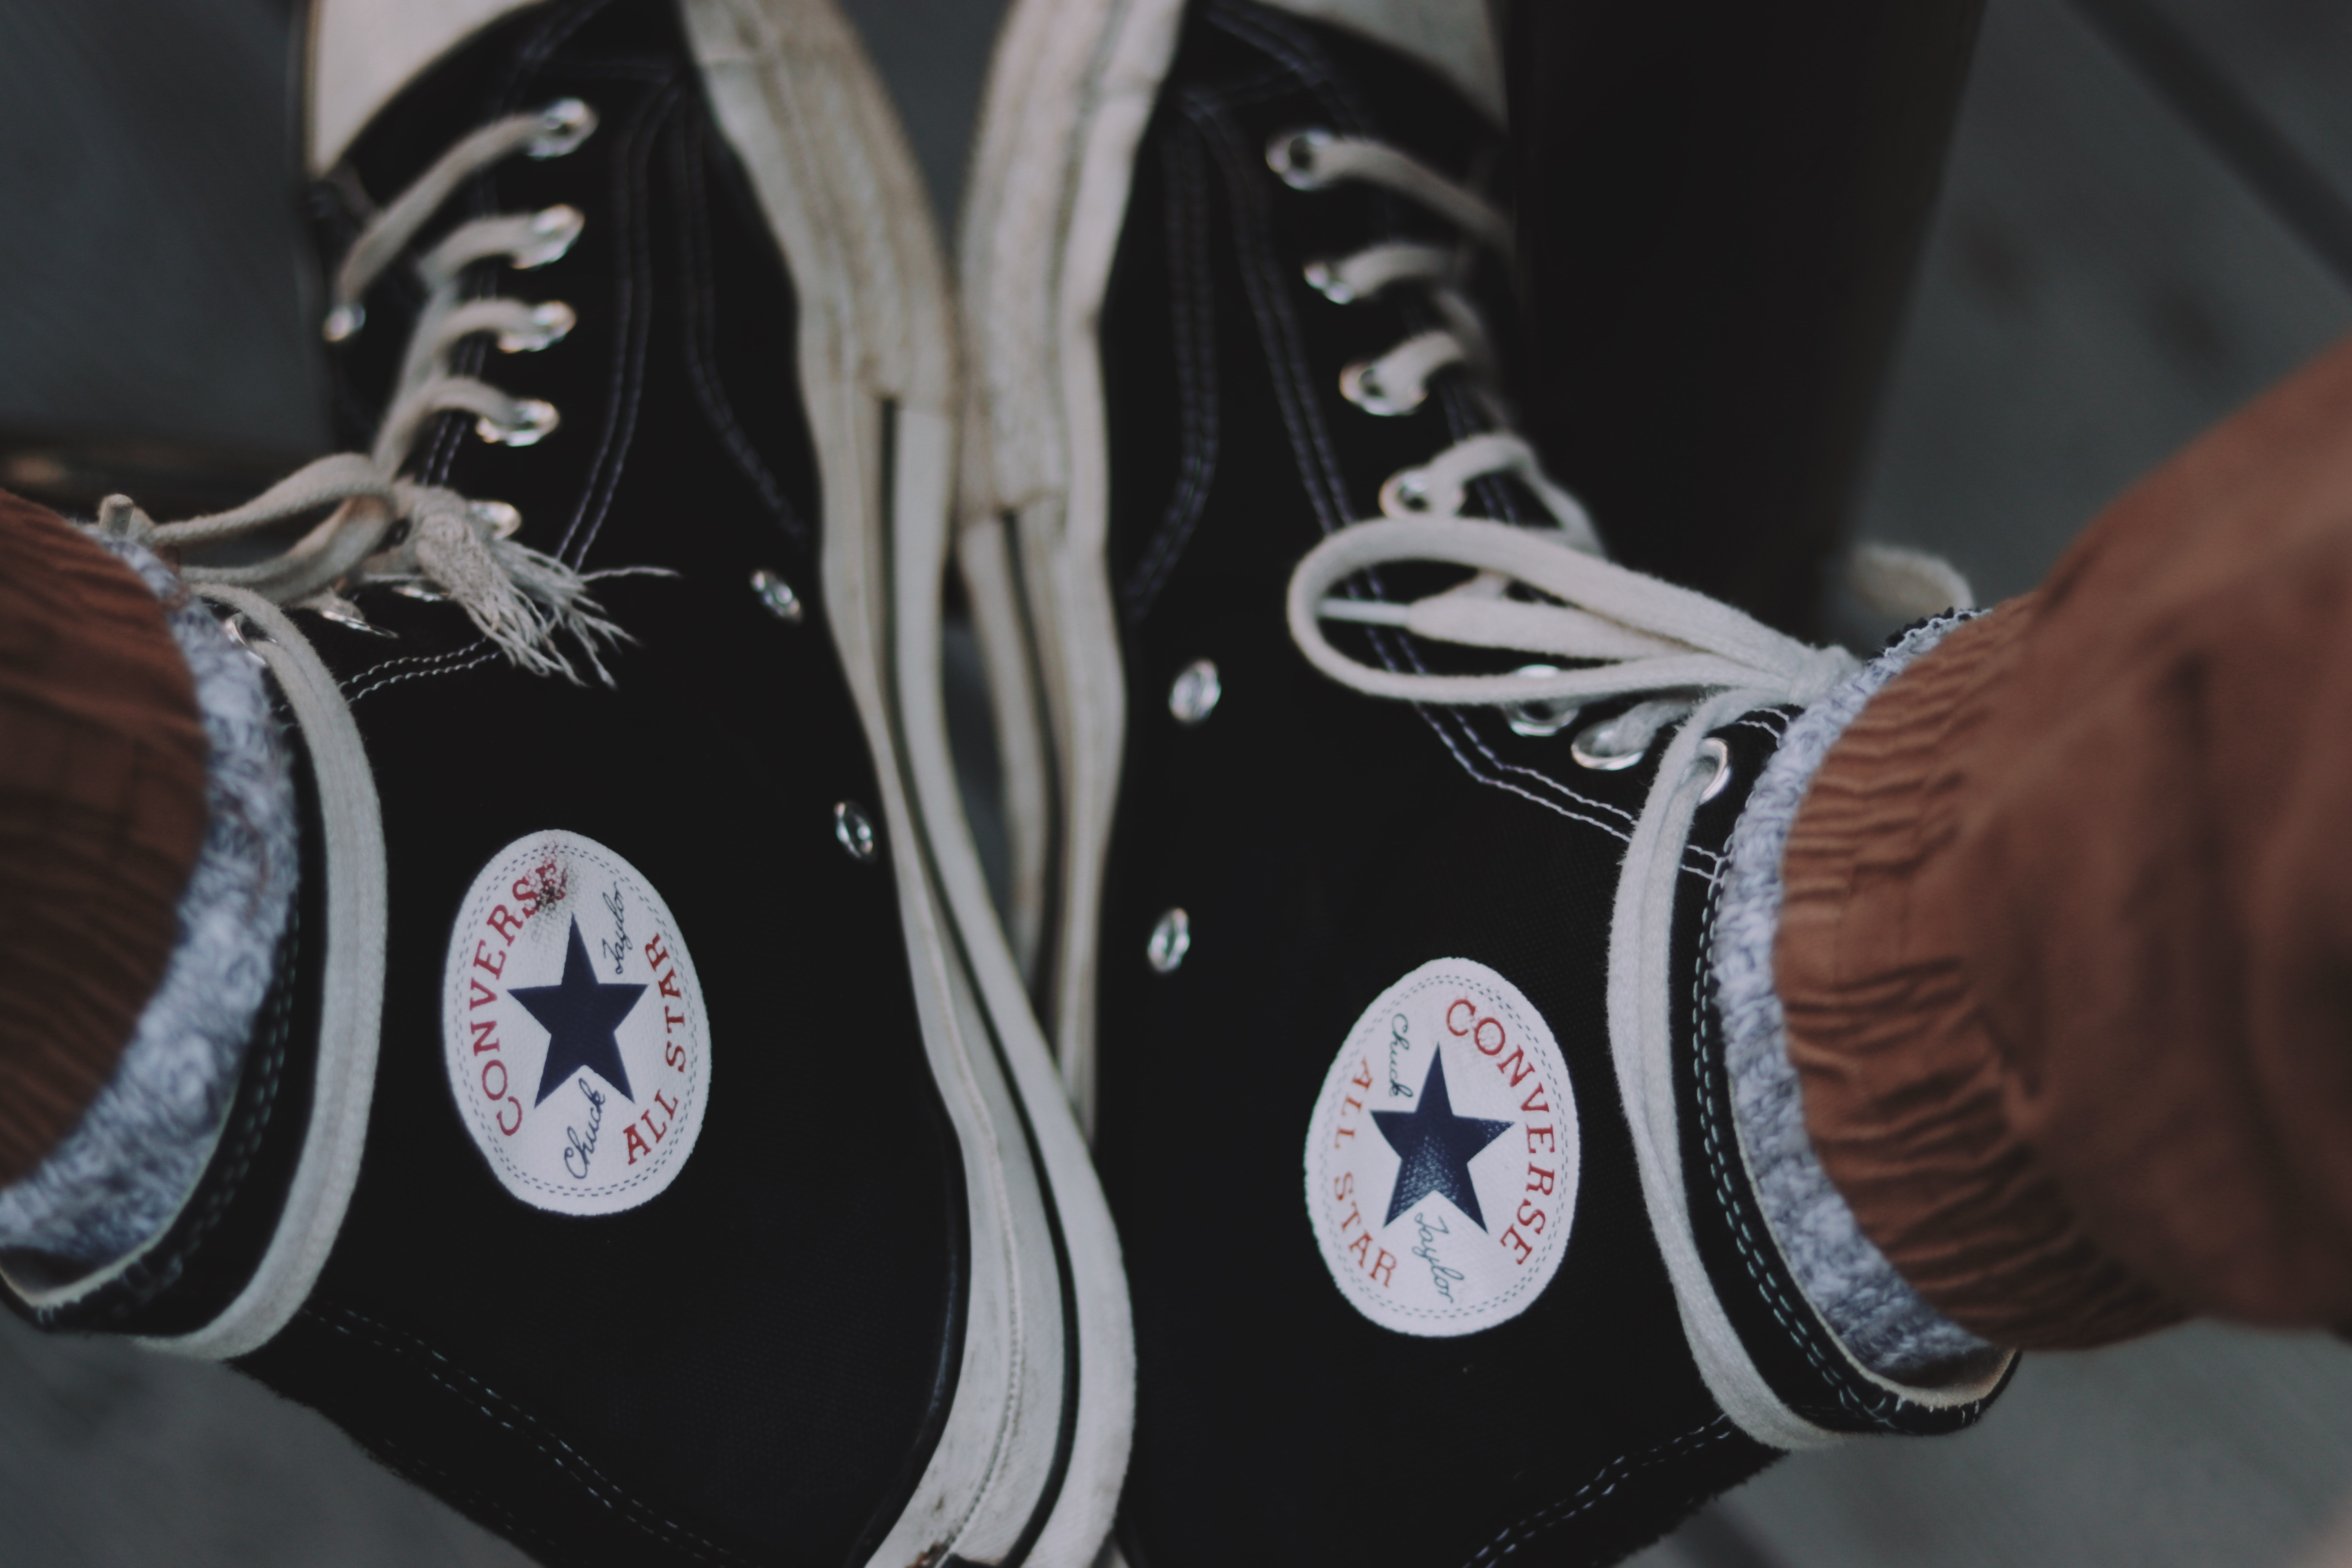 ce42ddd3c13 Close-Up Photo of Converse All Star · Free Stock Photo